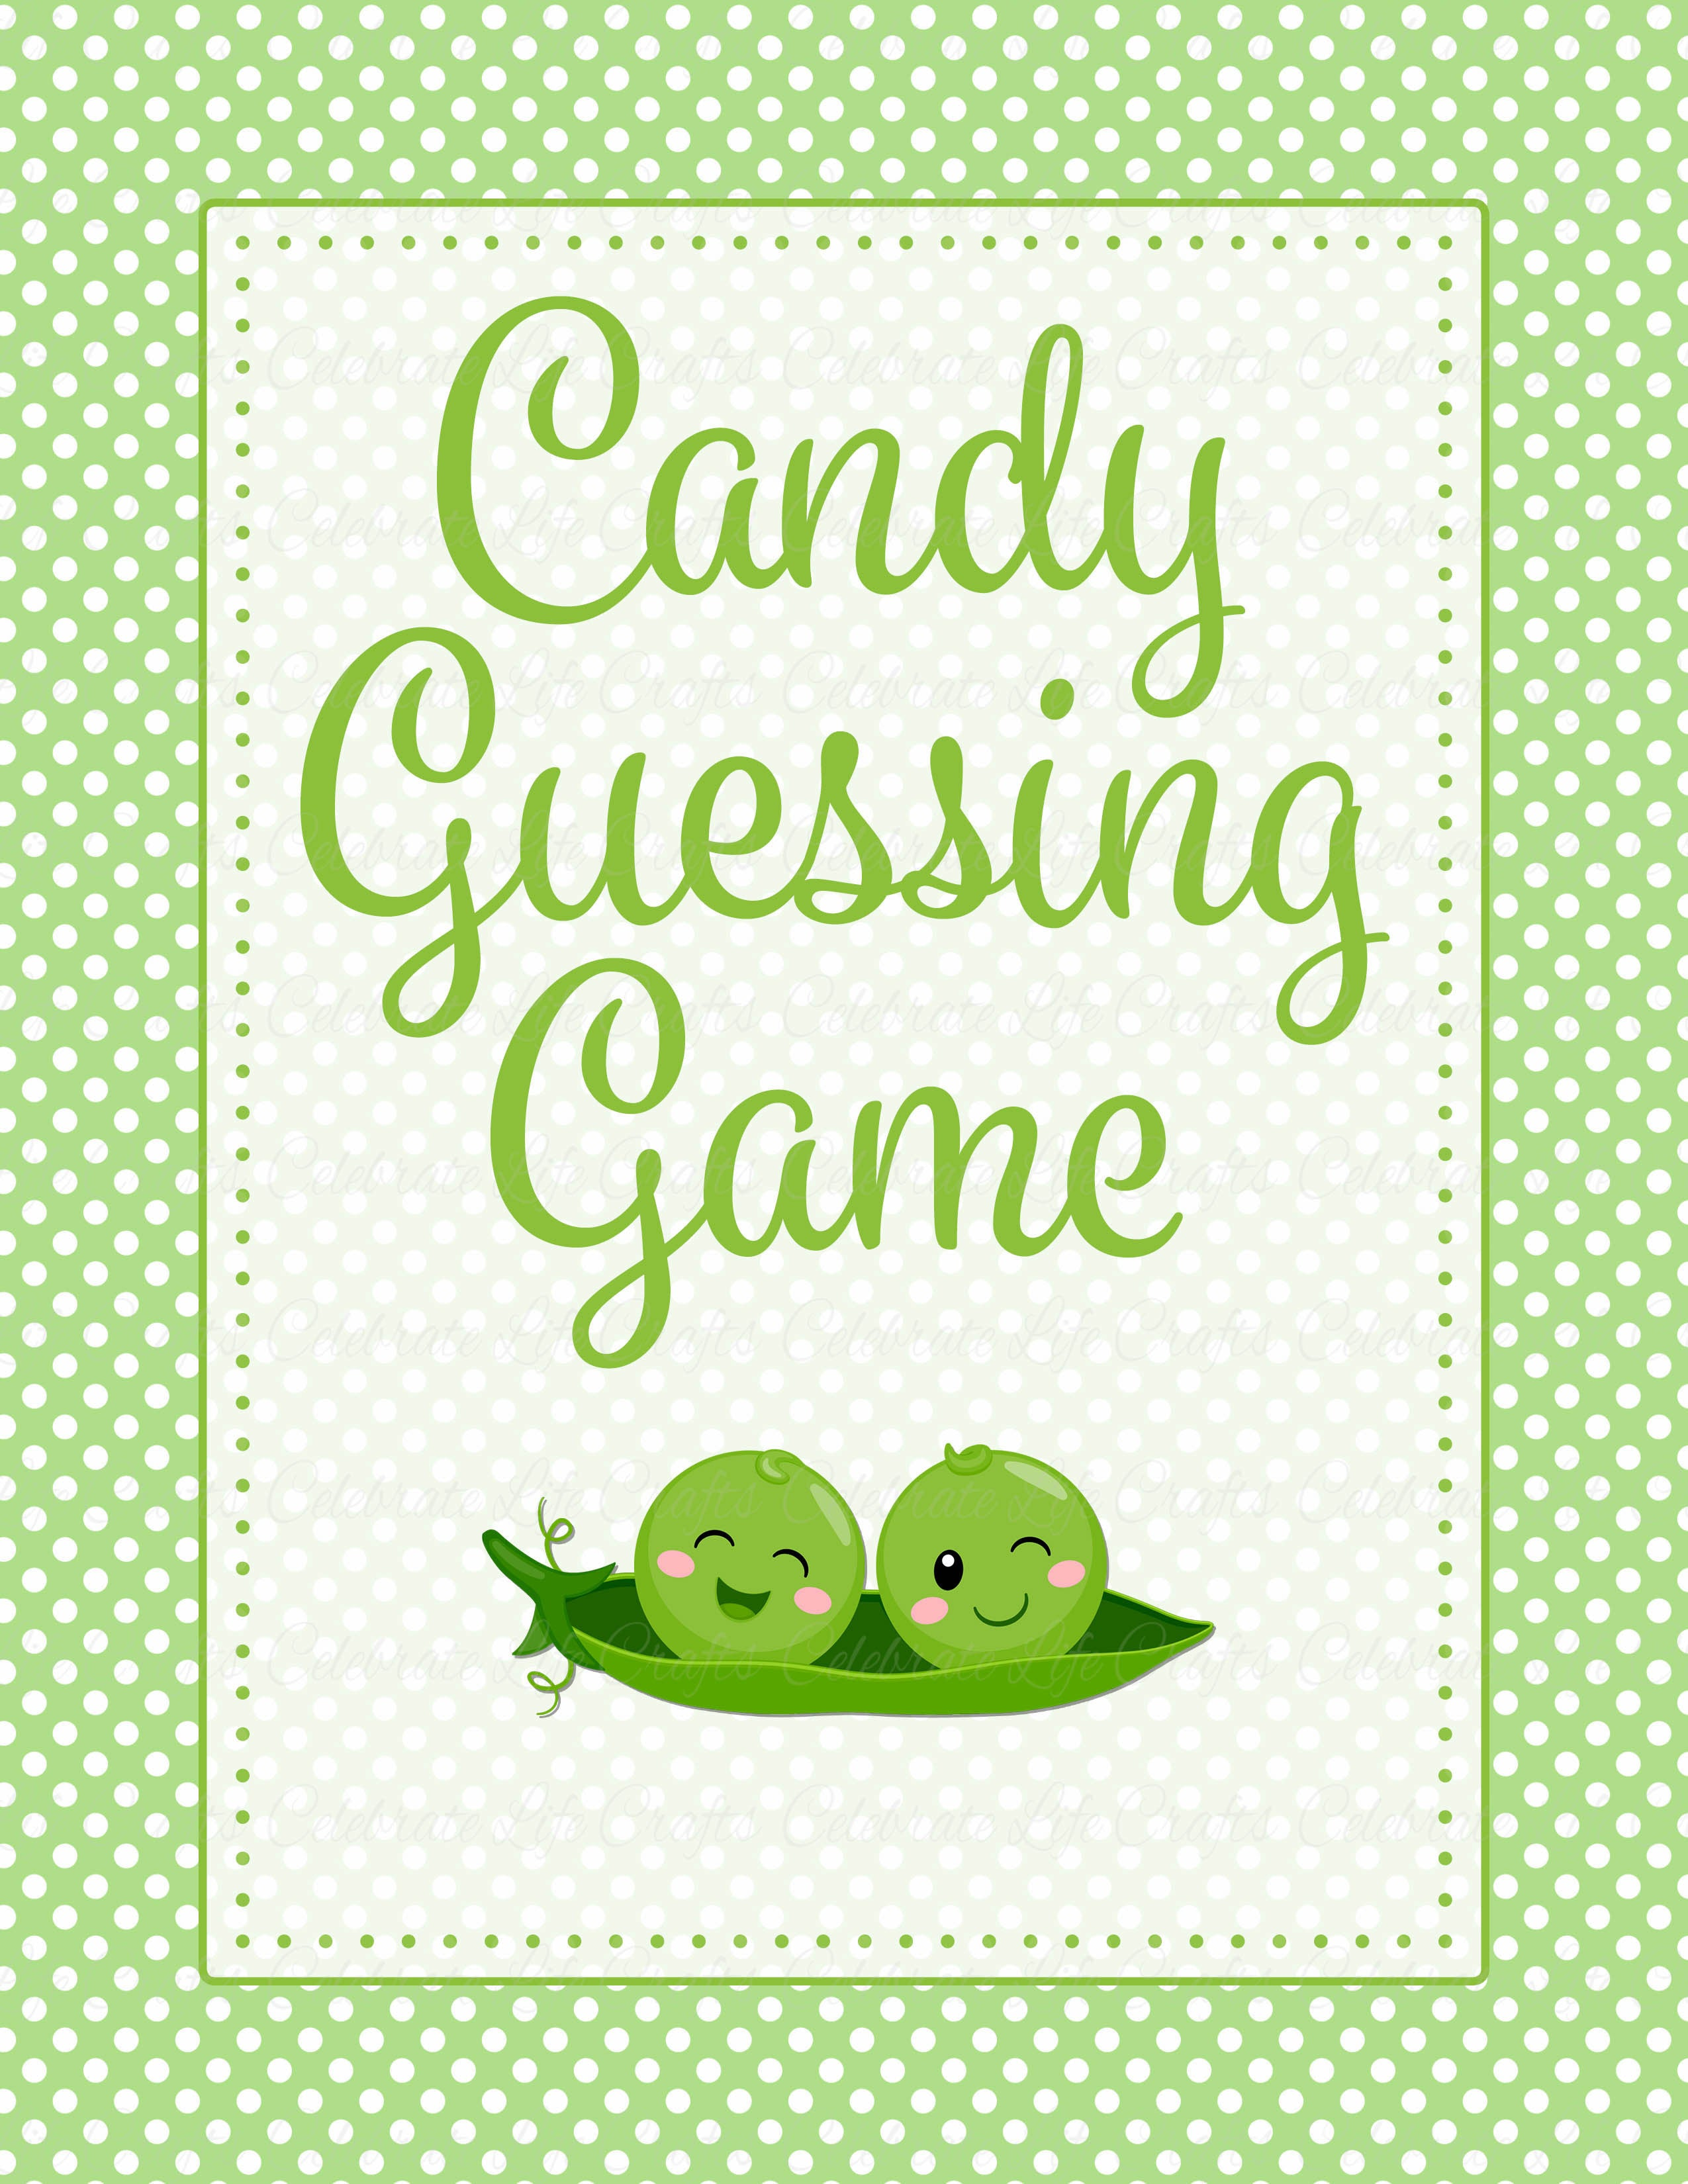 Candy Guessing Game   PRINTABLE DOWNLOAD   Boy Twins   Peas In A Pod Baby  Shower Game   B29001.